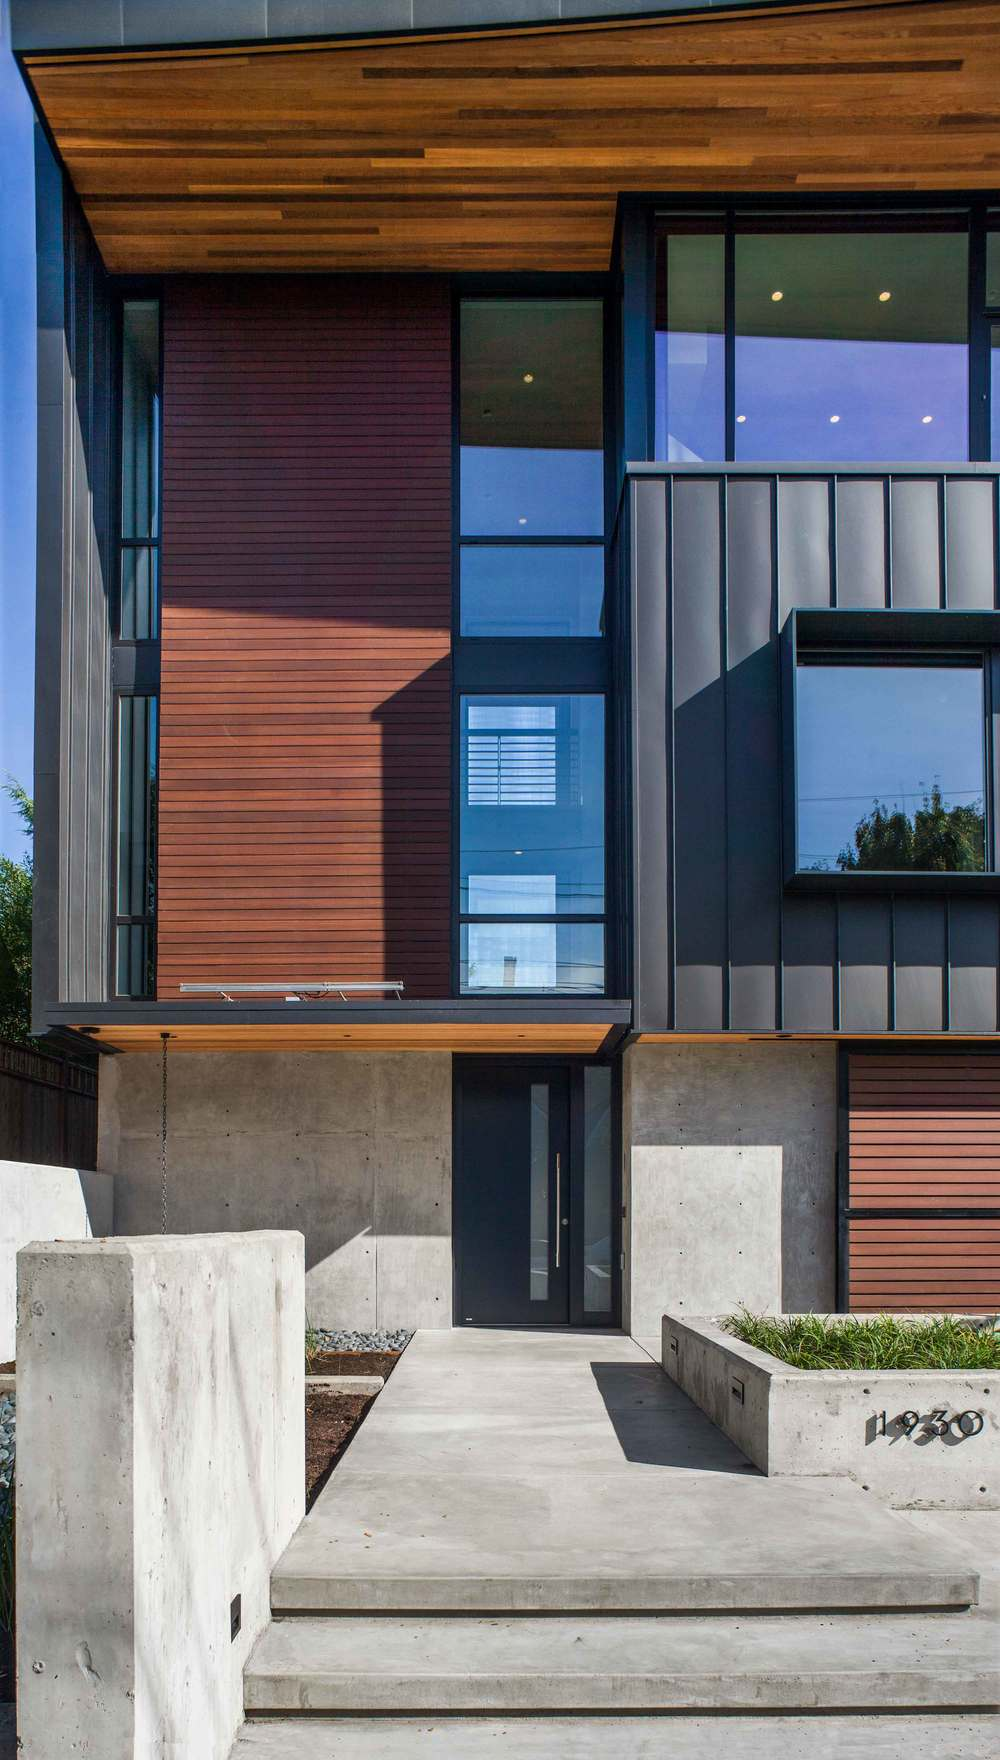 New-Century Modern, SE Portland<br><br><em>- Scott | Edwards Architecture -</em>